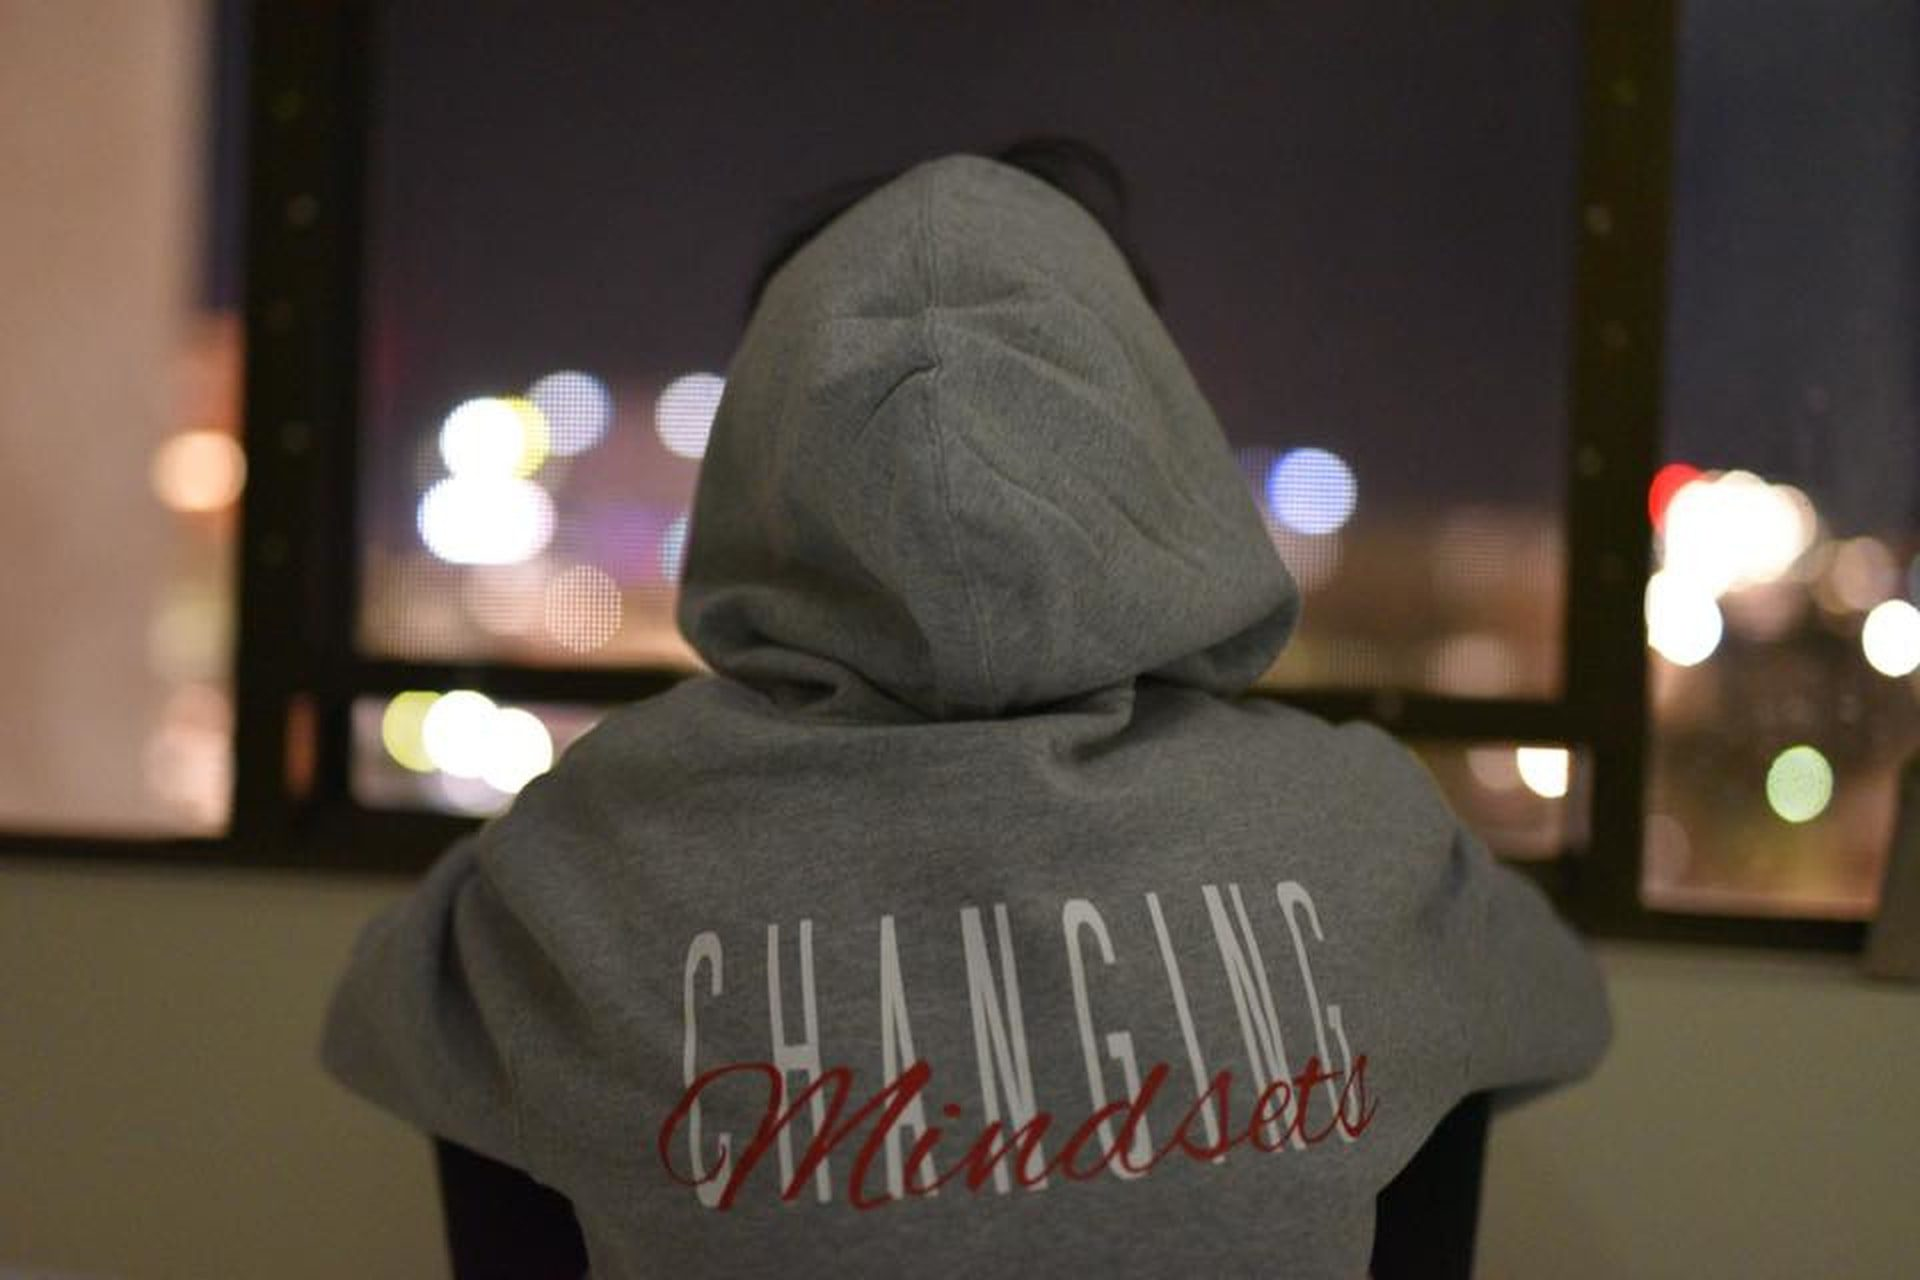 A girl sitting with her back to the camera with a hoodie stating Changing mindsets